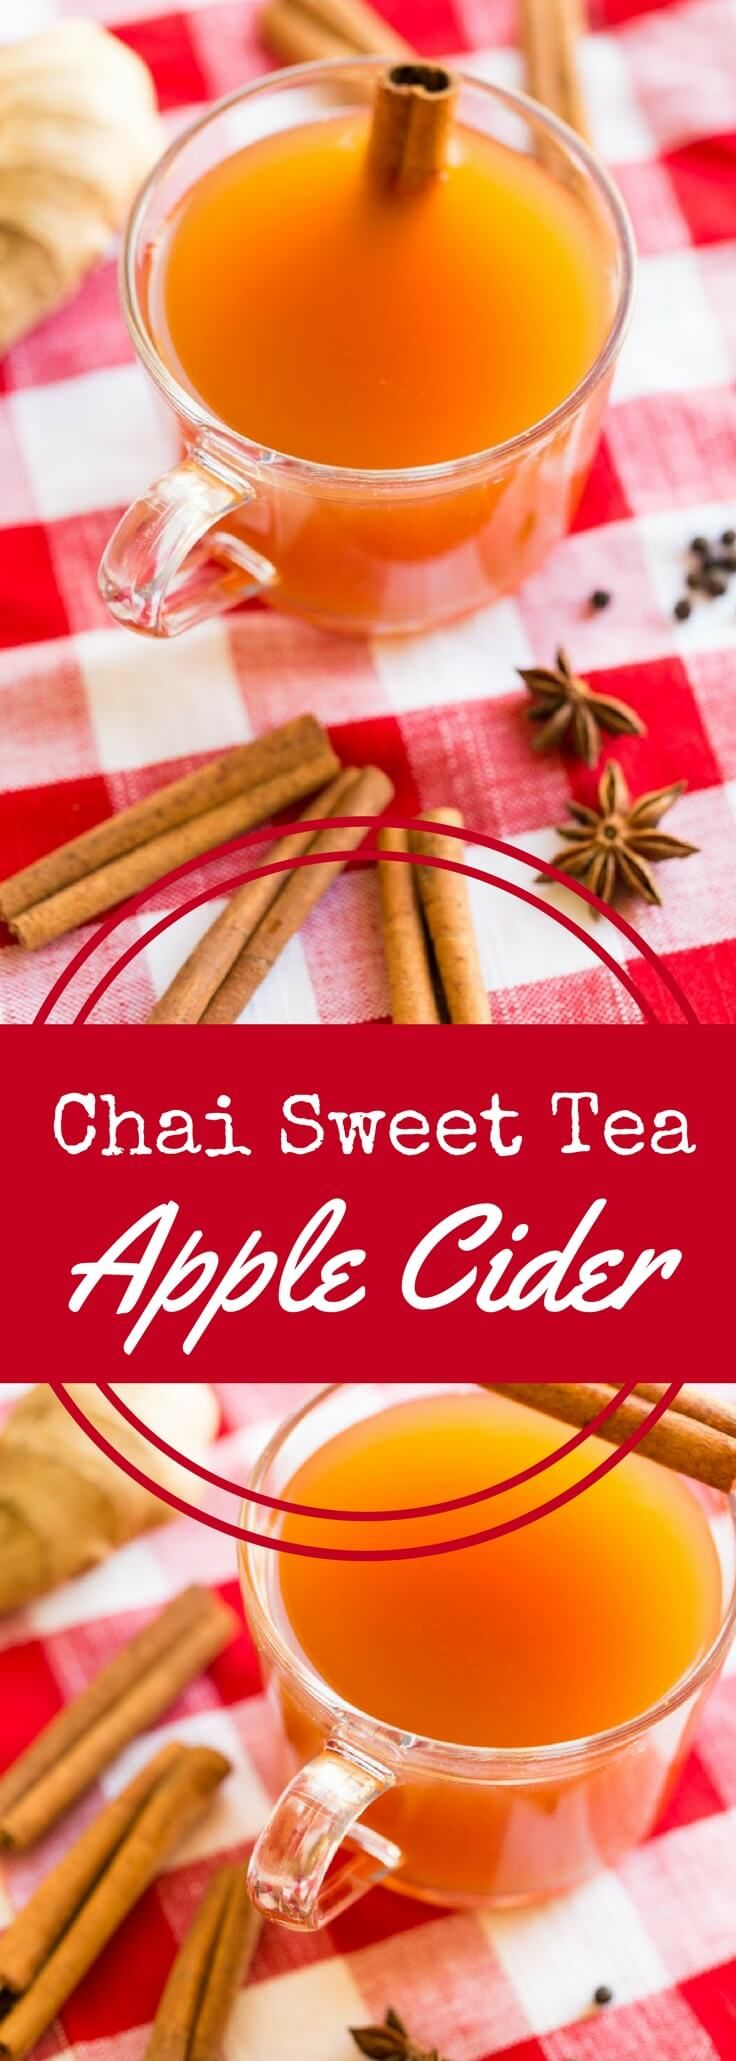 A blend of apple cider, tea, and chai spices, this delicious Chai Spiced Sweet Tea Hot Apple Cider recipe is perfect for fall, winter, and the holidays. @drinkmilos #PassTheMilos #Pmedia #ad via @recipeforperfec